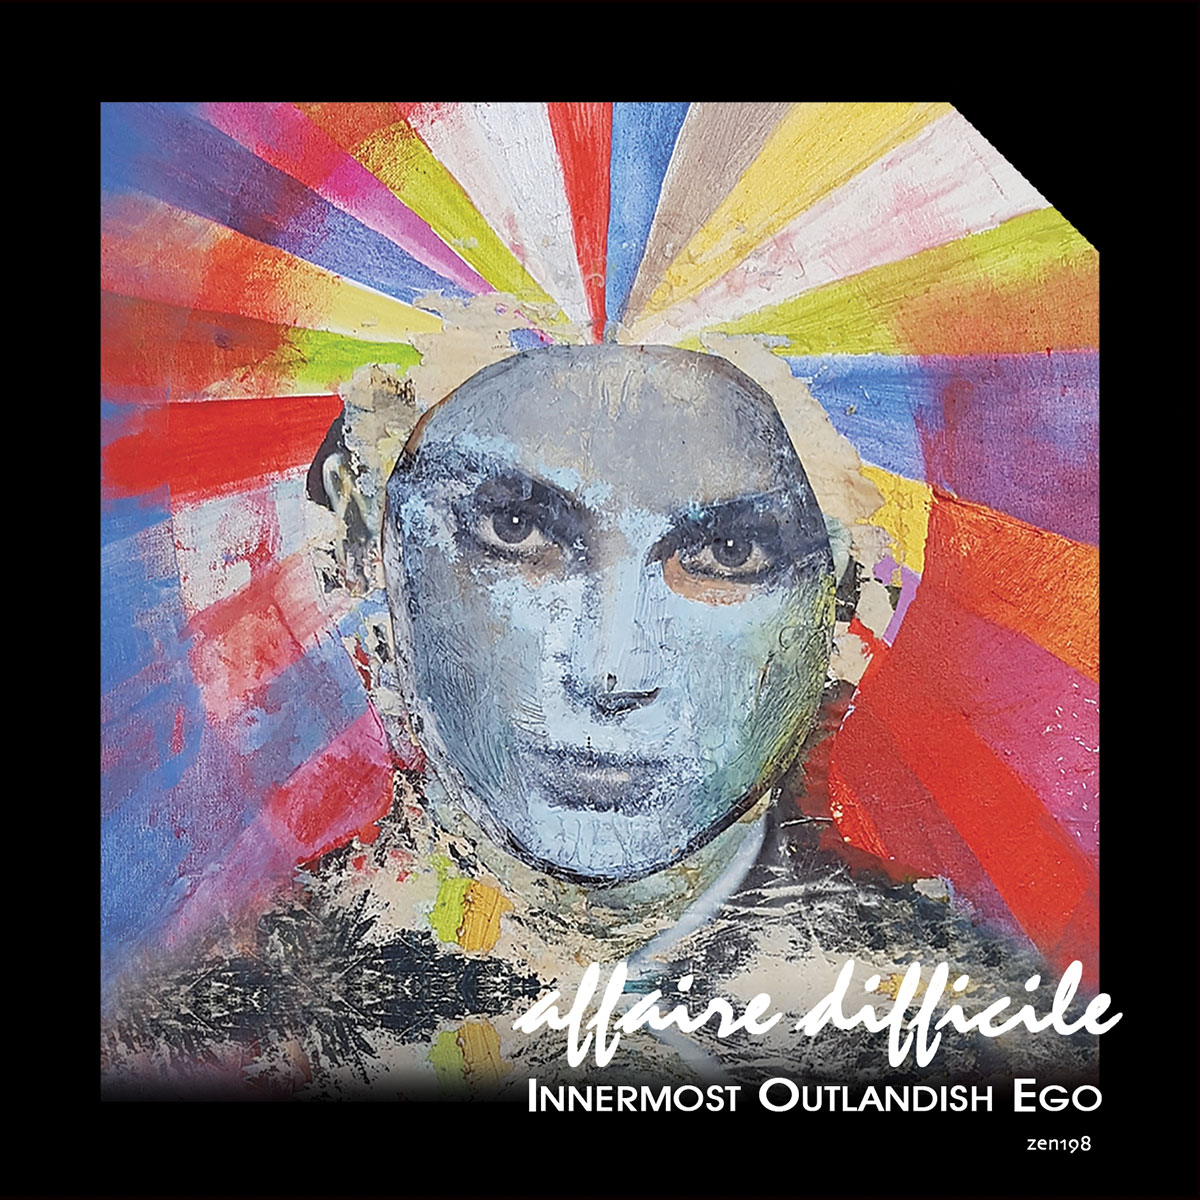 affaire difficile – Innermost Outlandish Ego